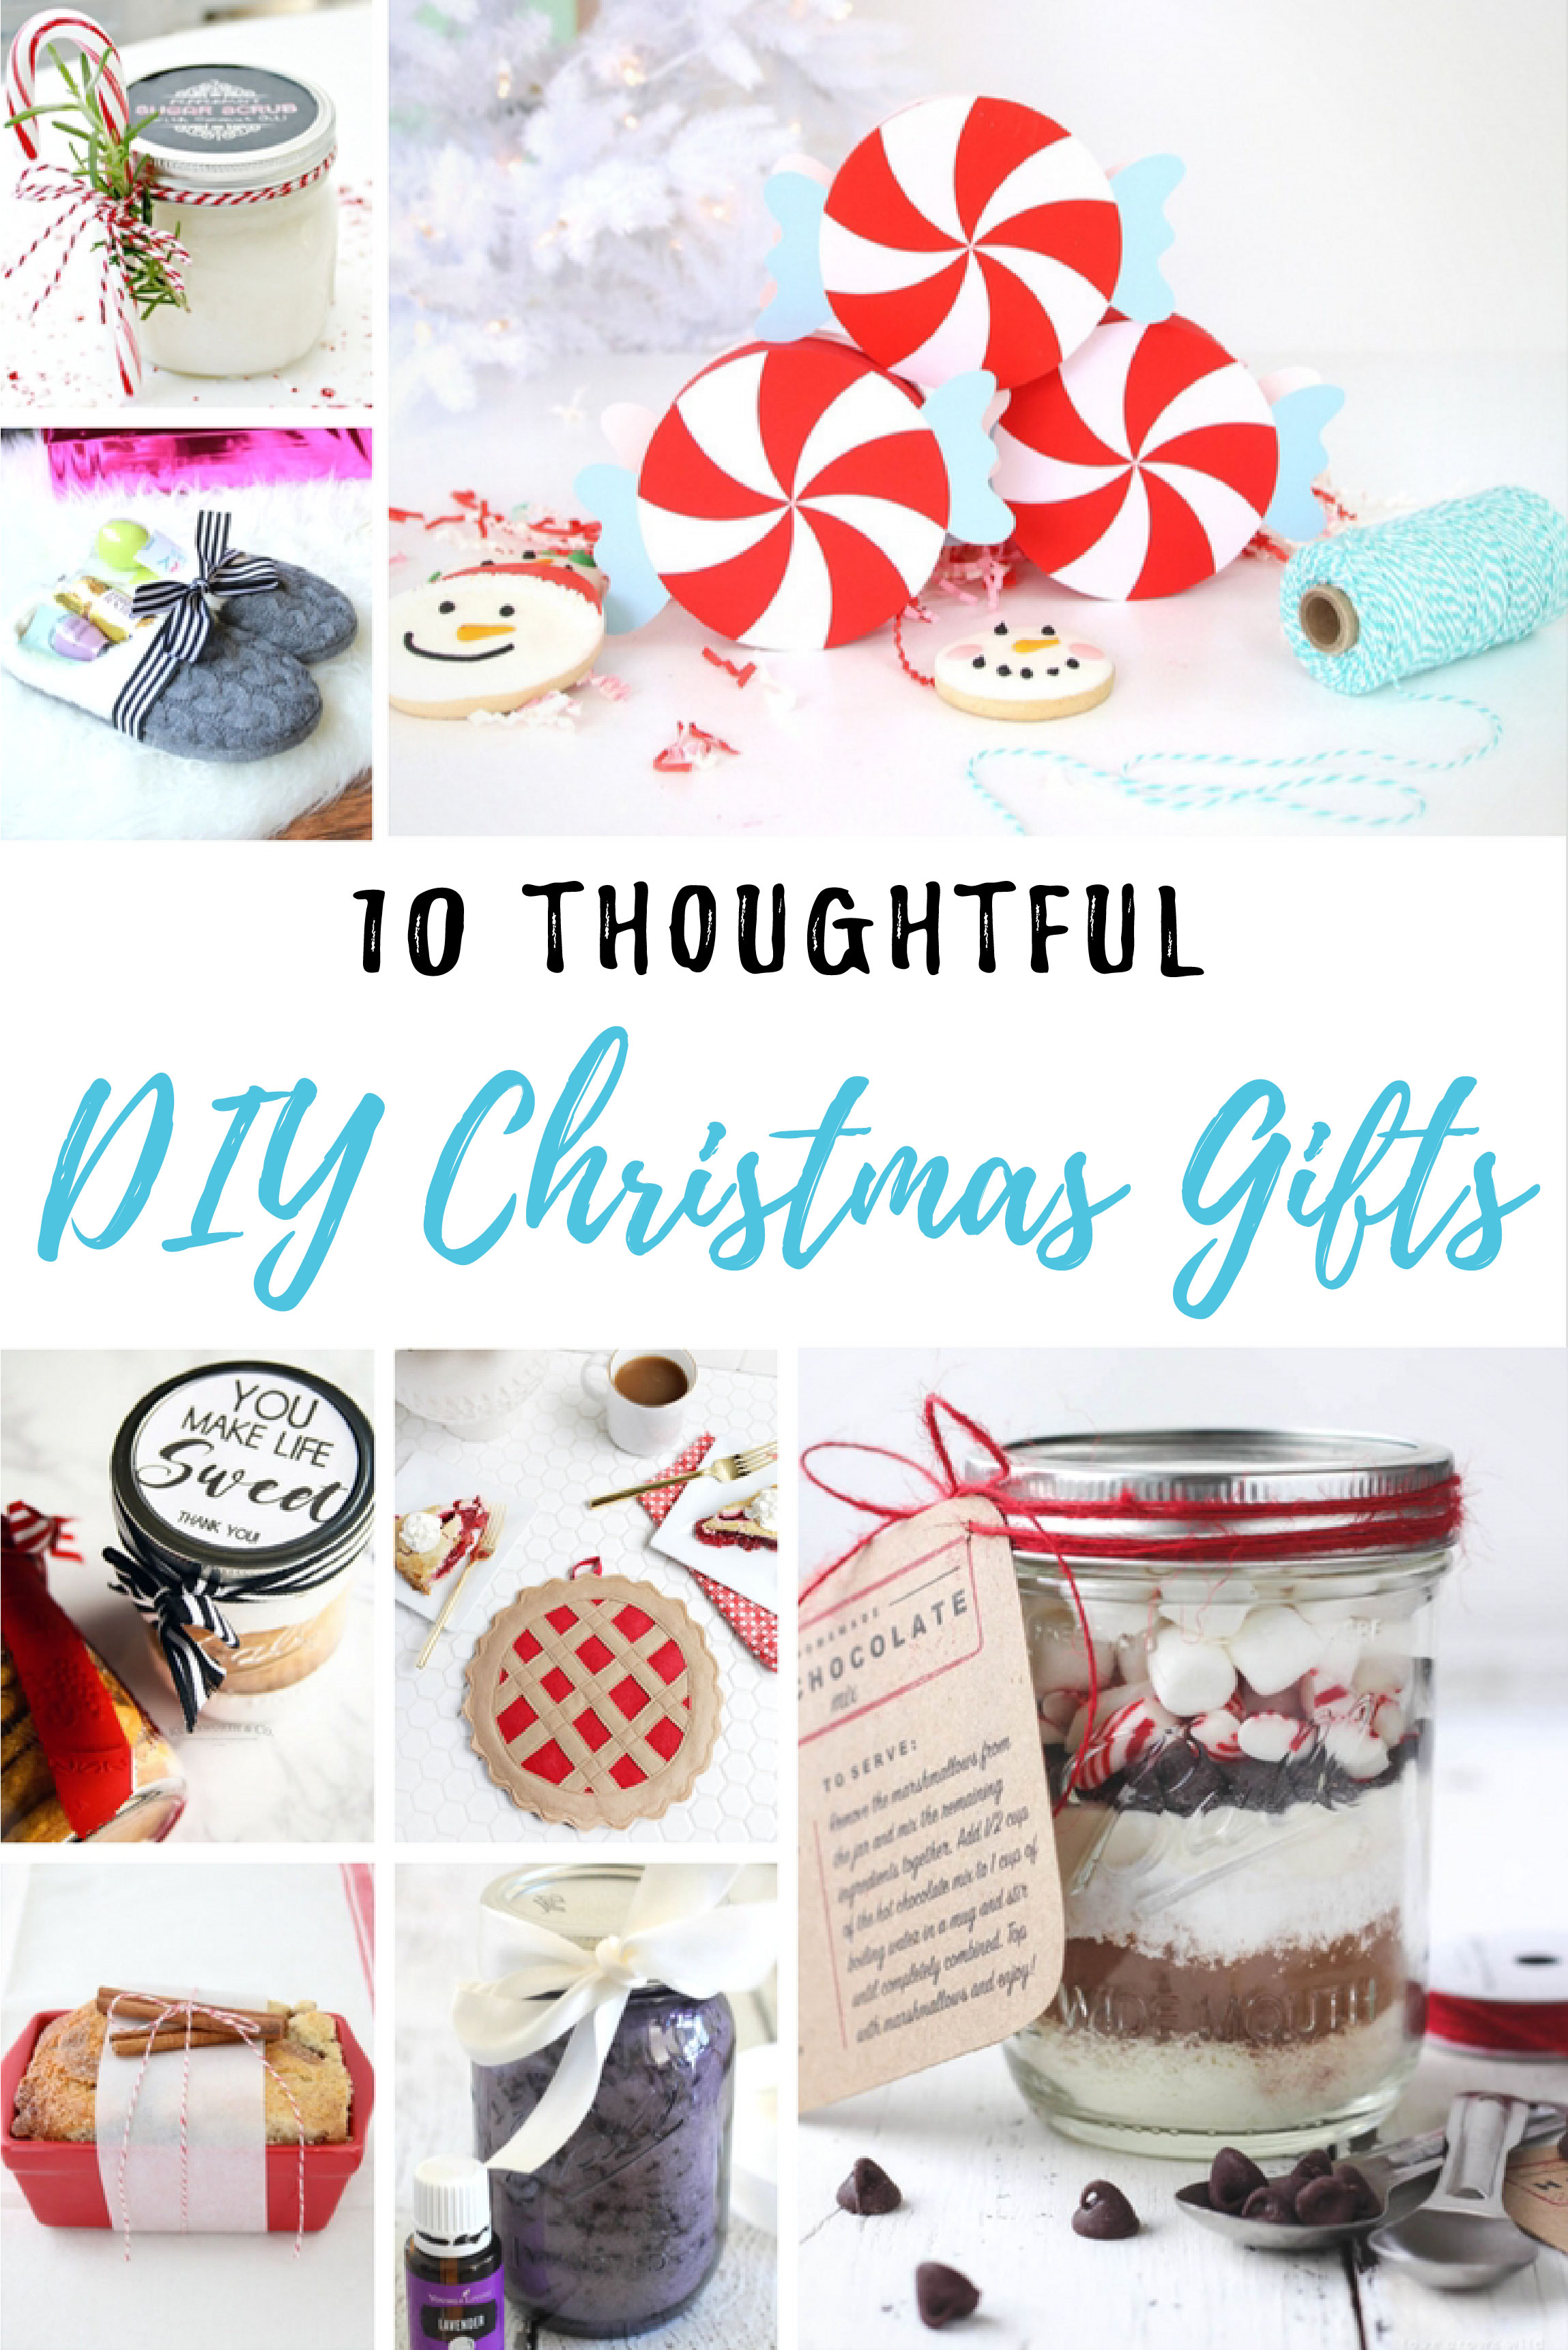 10 Thoughtful DIY Christmas Gifts | Amber Oliver